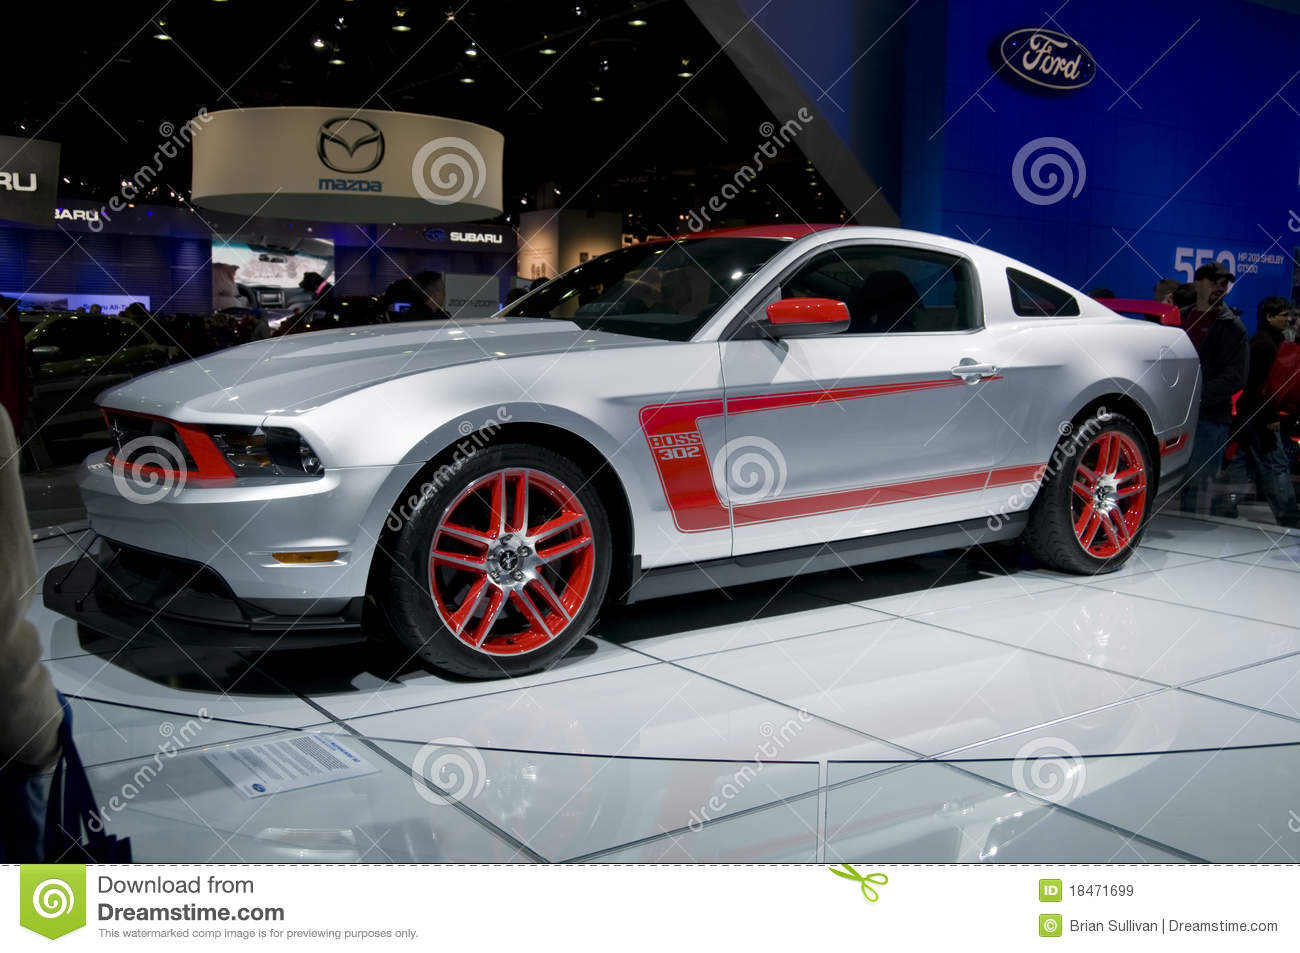 2011 Ford Mustang Boss 302R photo - 1